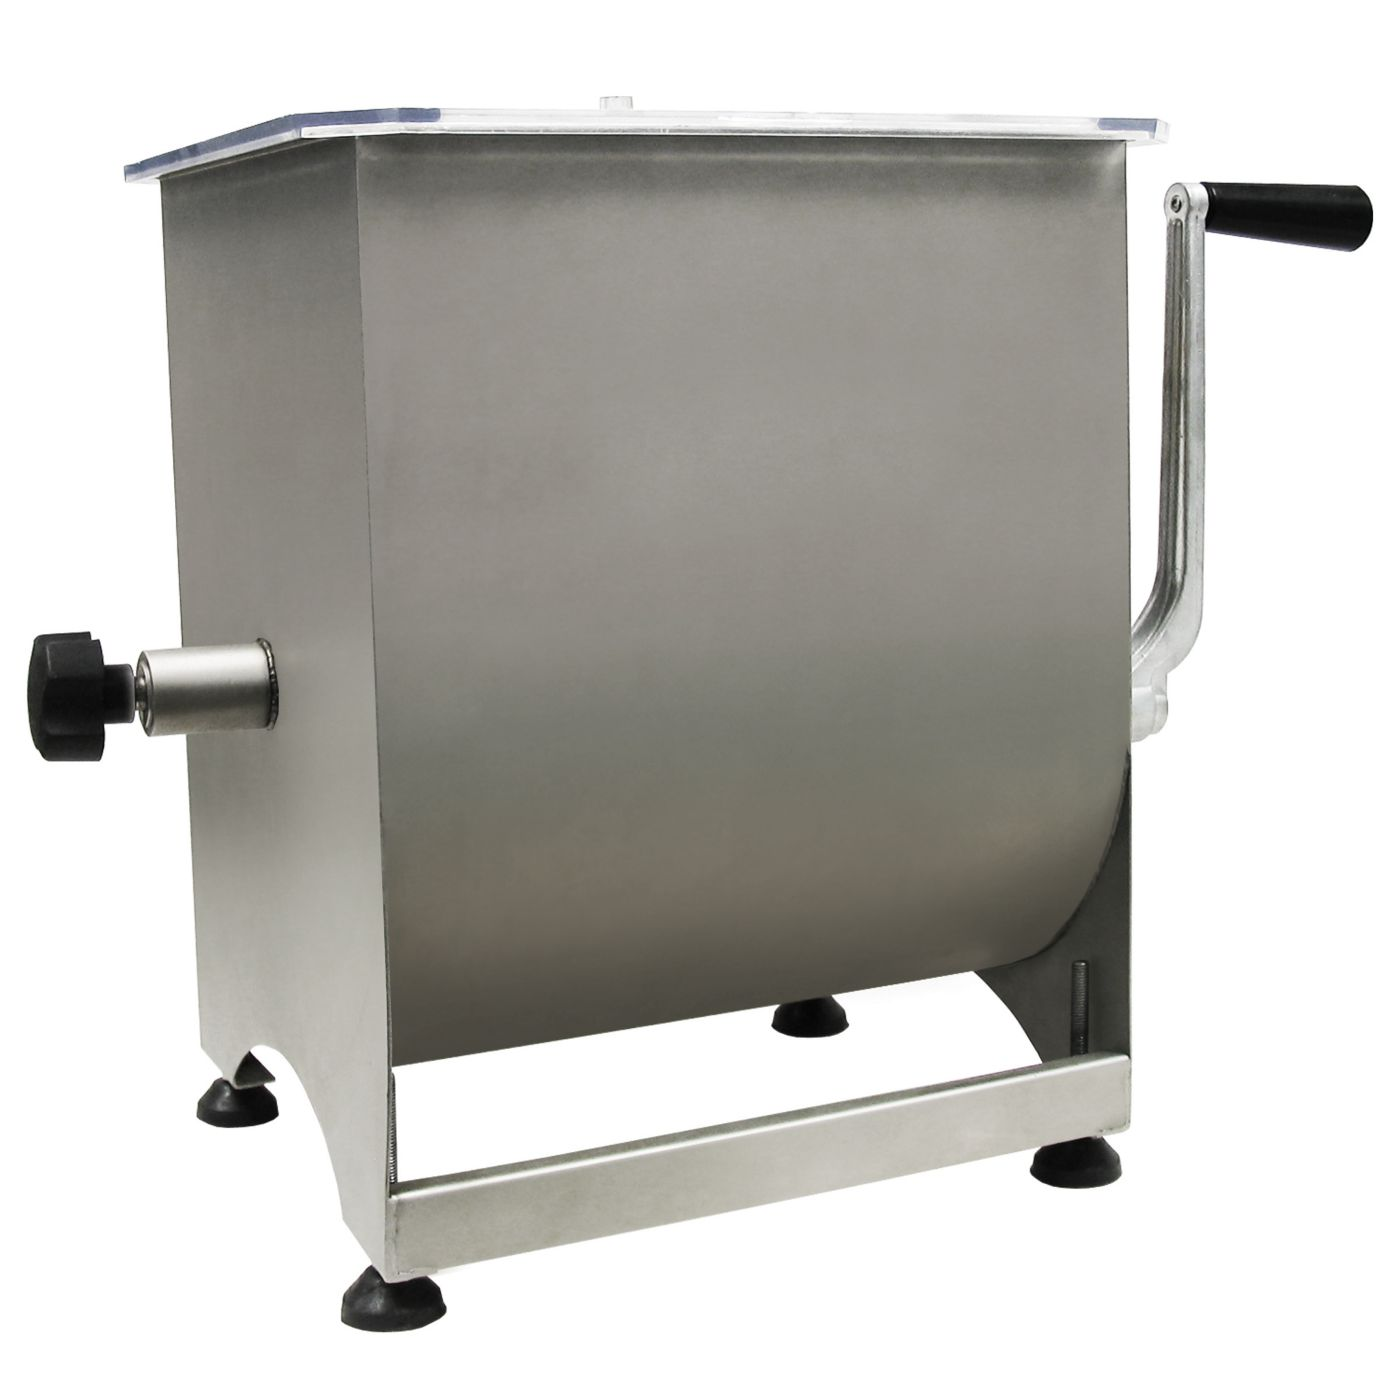 Weston 44 lb Pro Series Stainless Steel Manual Meat Mixer